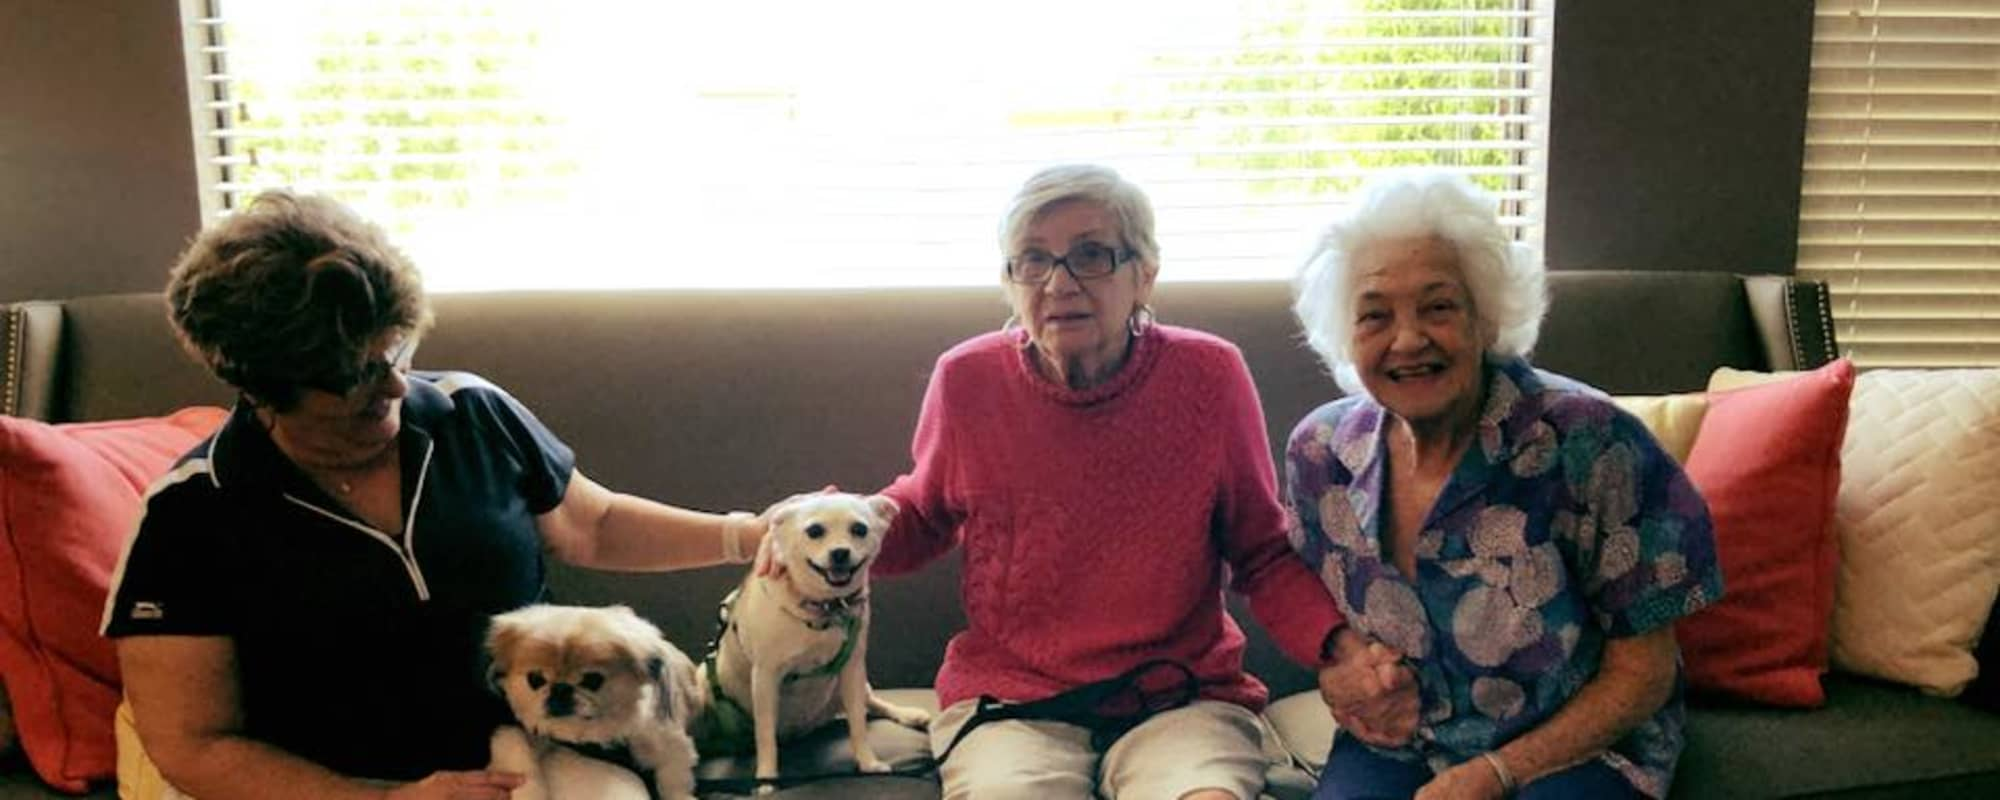 Seniors petting dogs at Hacienda Del Rey in Litchfield Park, Arizona